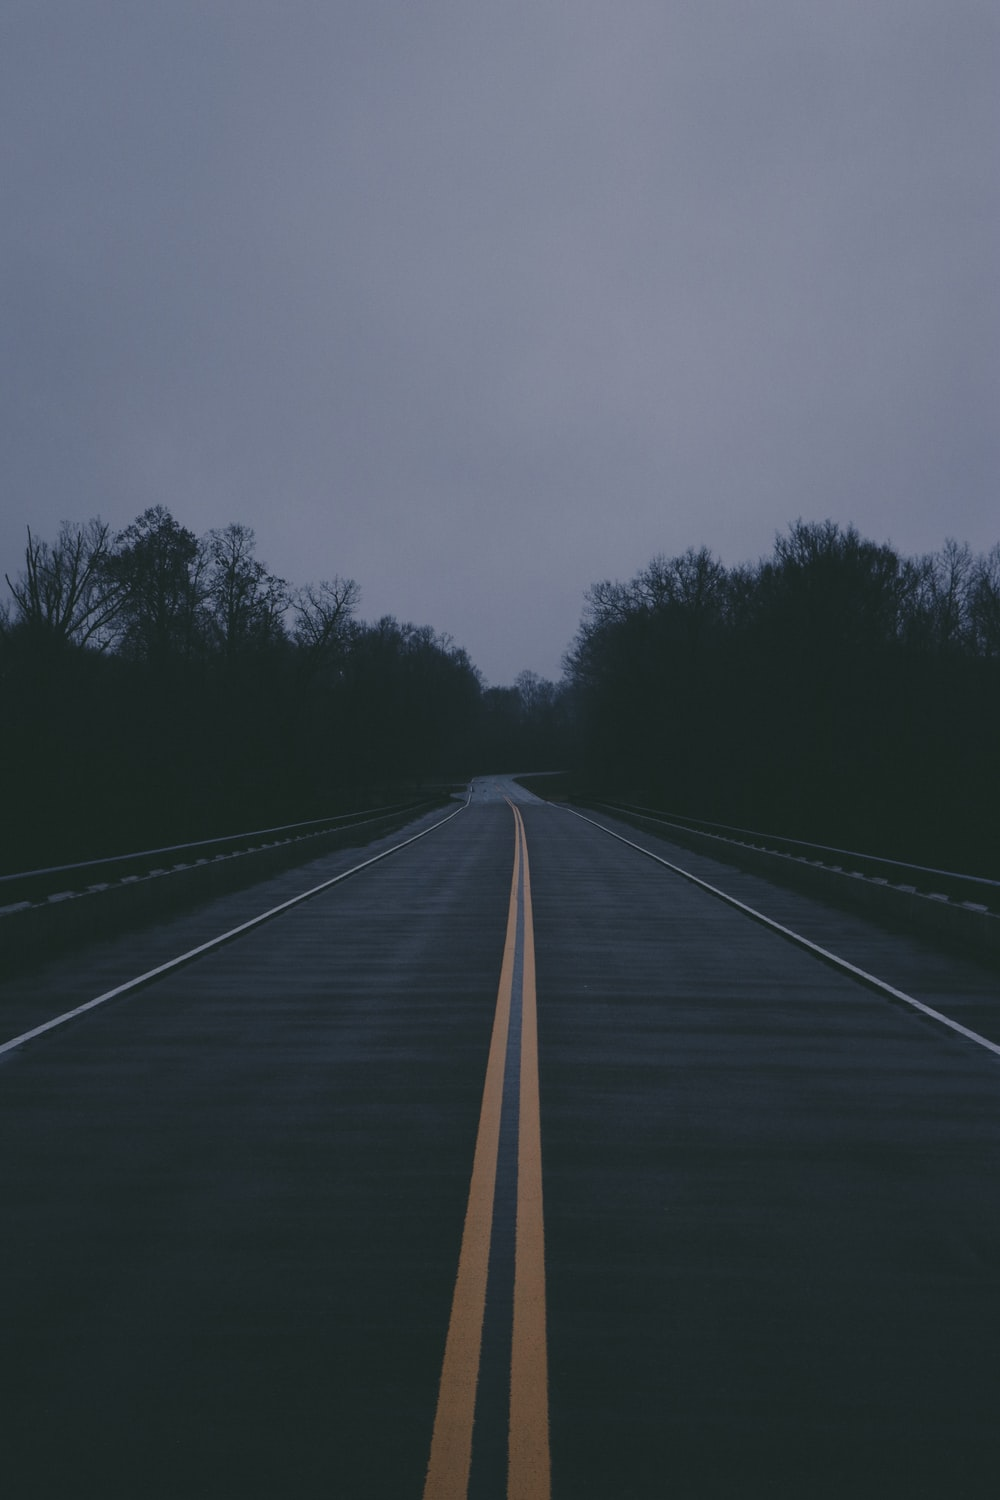 empty gray concrete road during nighttime